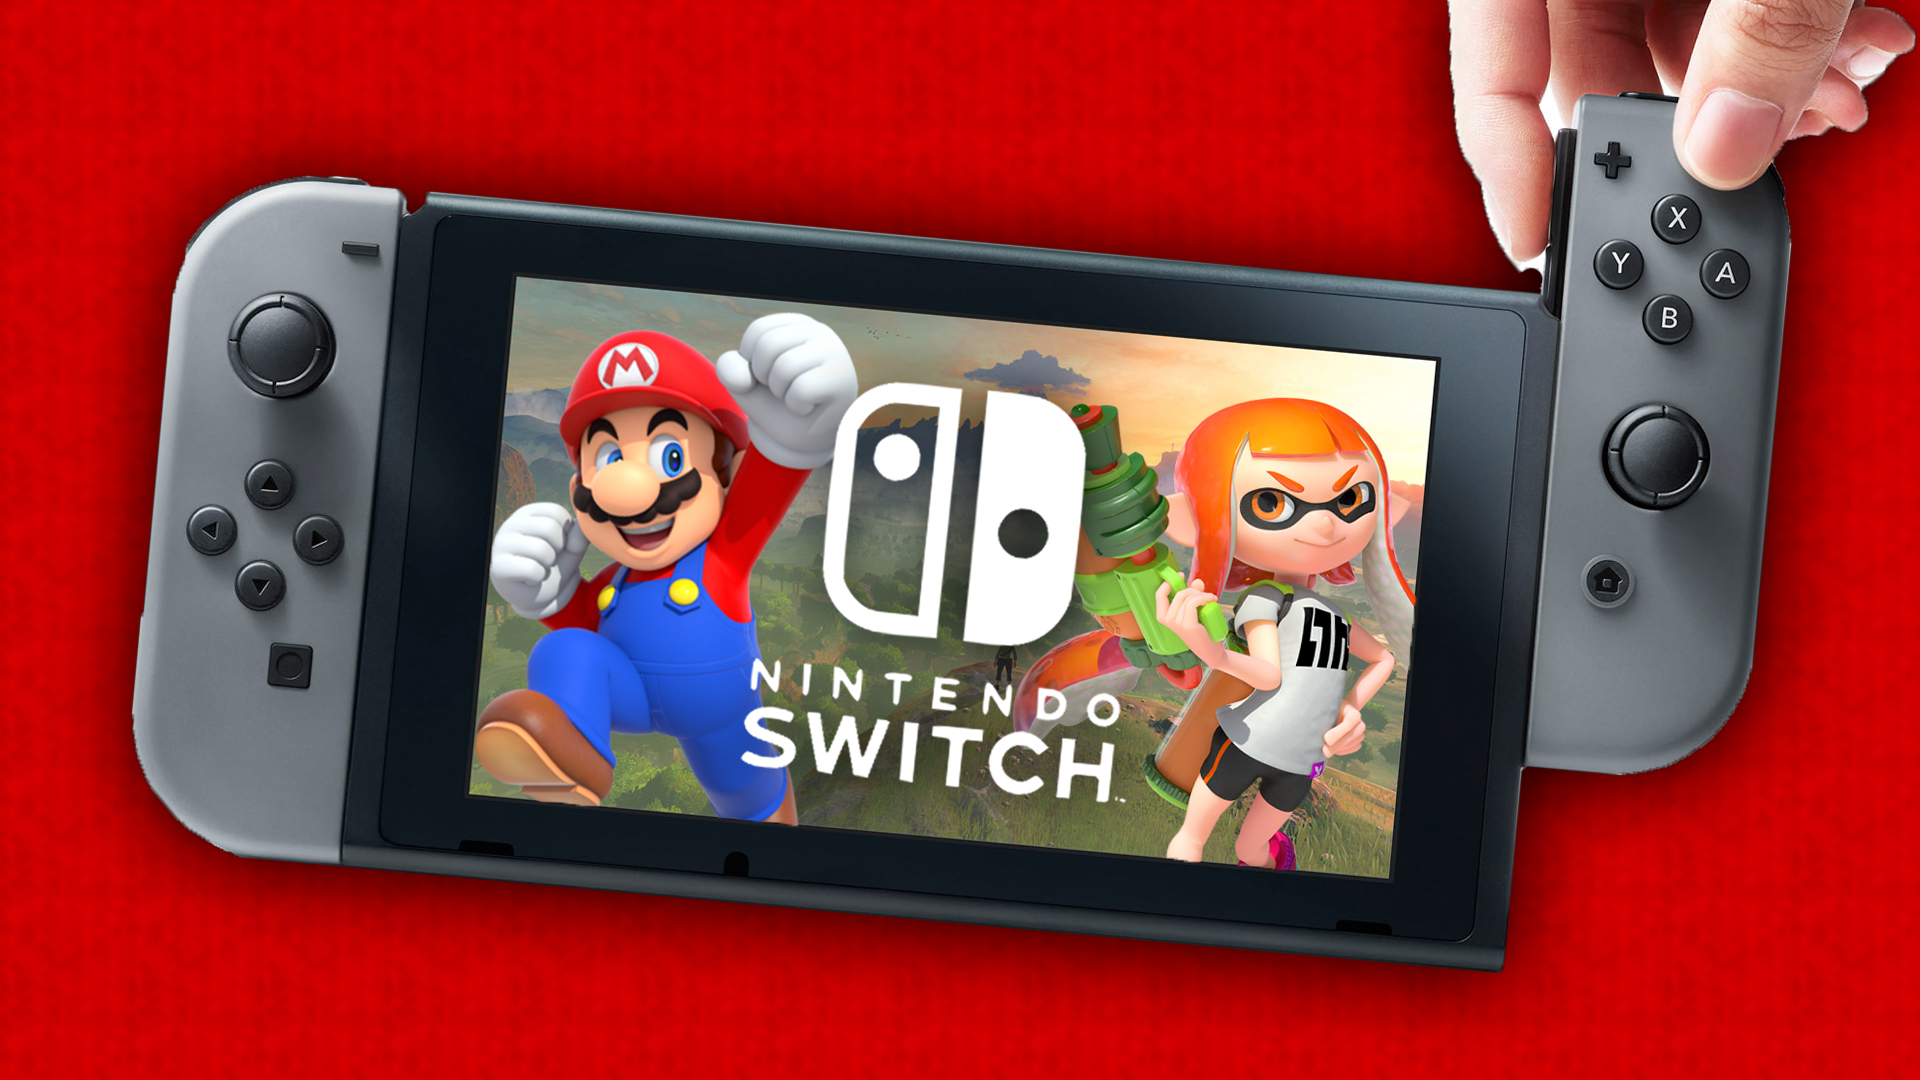 11 Fantastic Hd Nintendo Switch Wallpapers